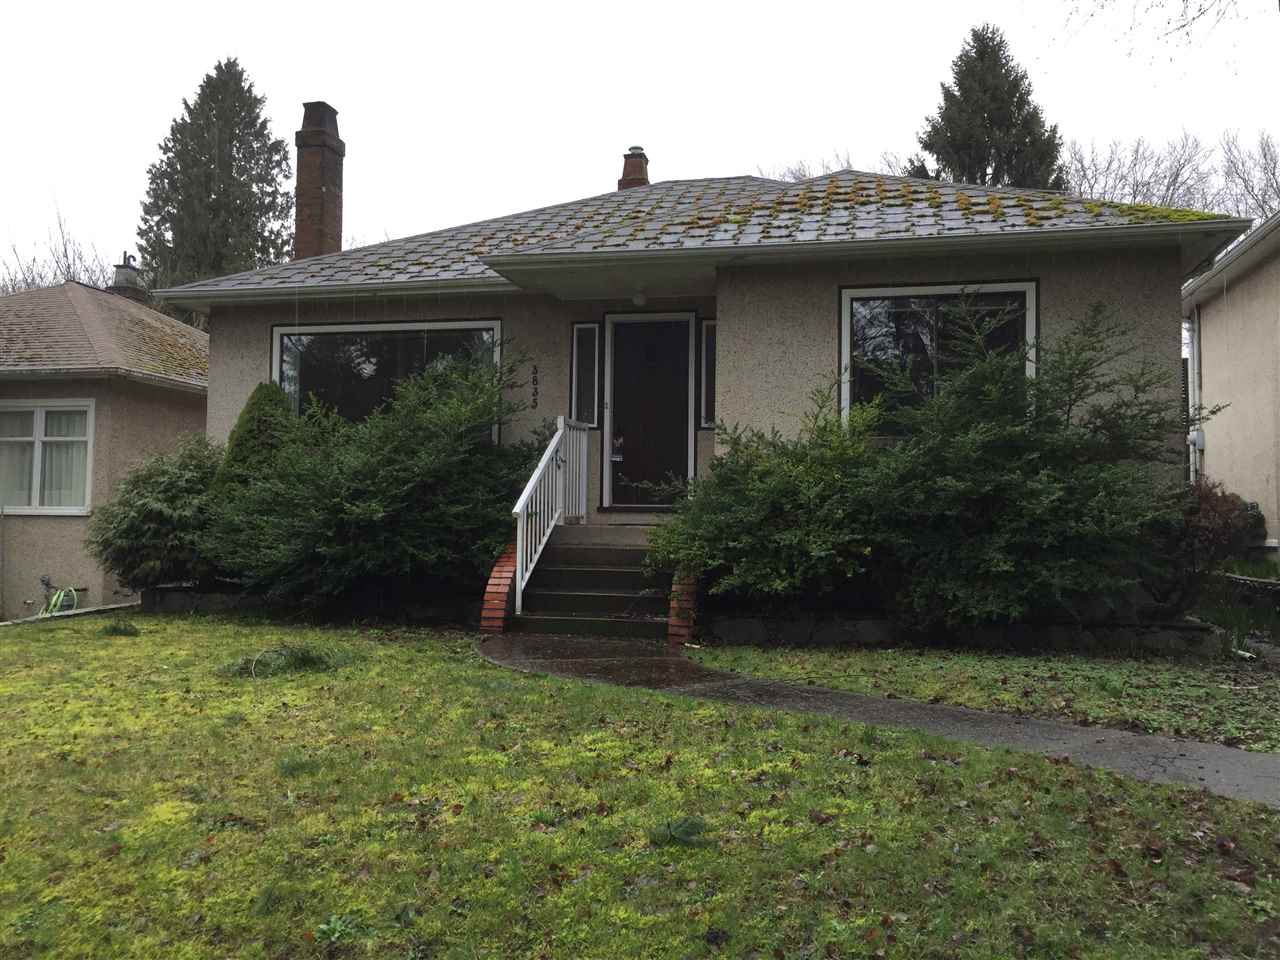 Main Photo: 3835 W 27TH AVENUE in Vancouver: Dunbar House for sale (Vancouver West)  : MLS® # R2039039